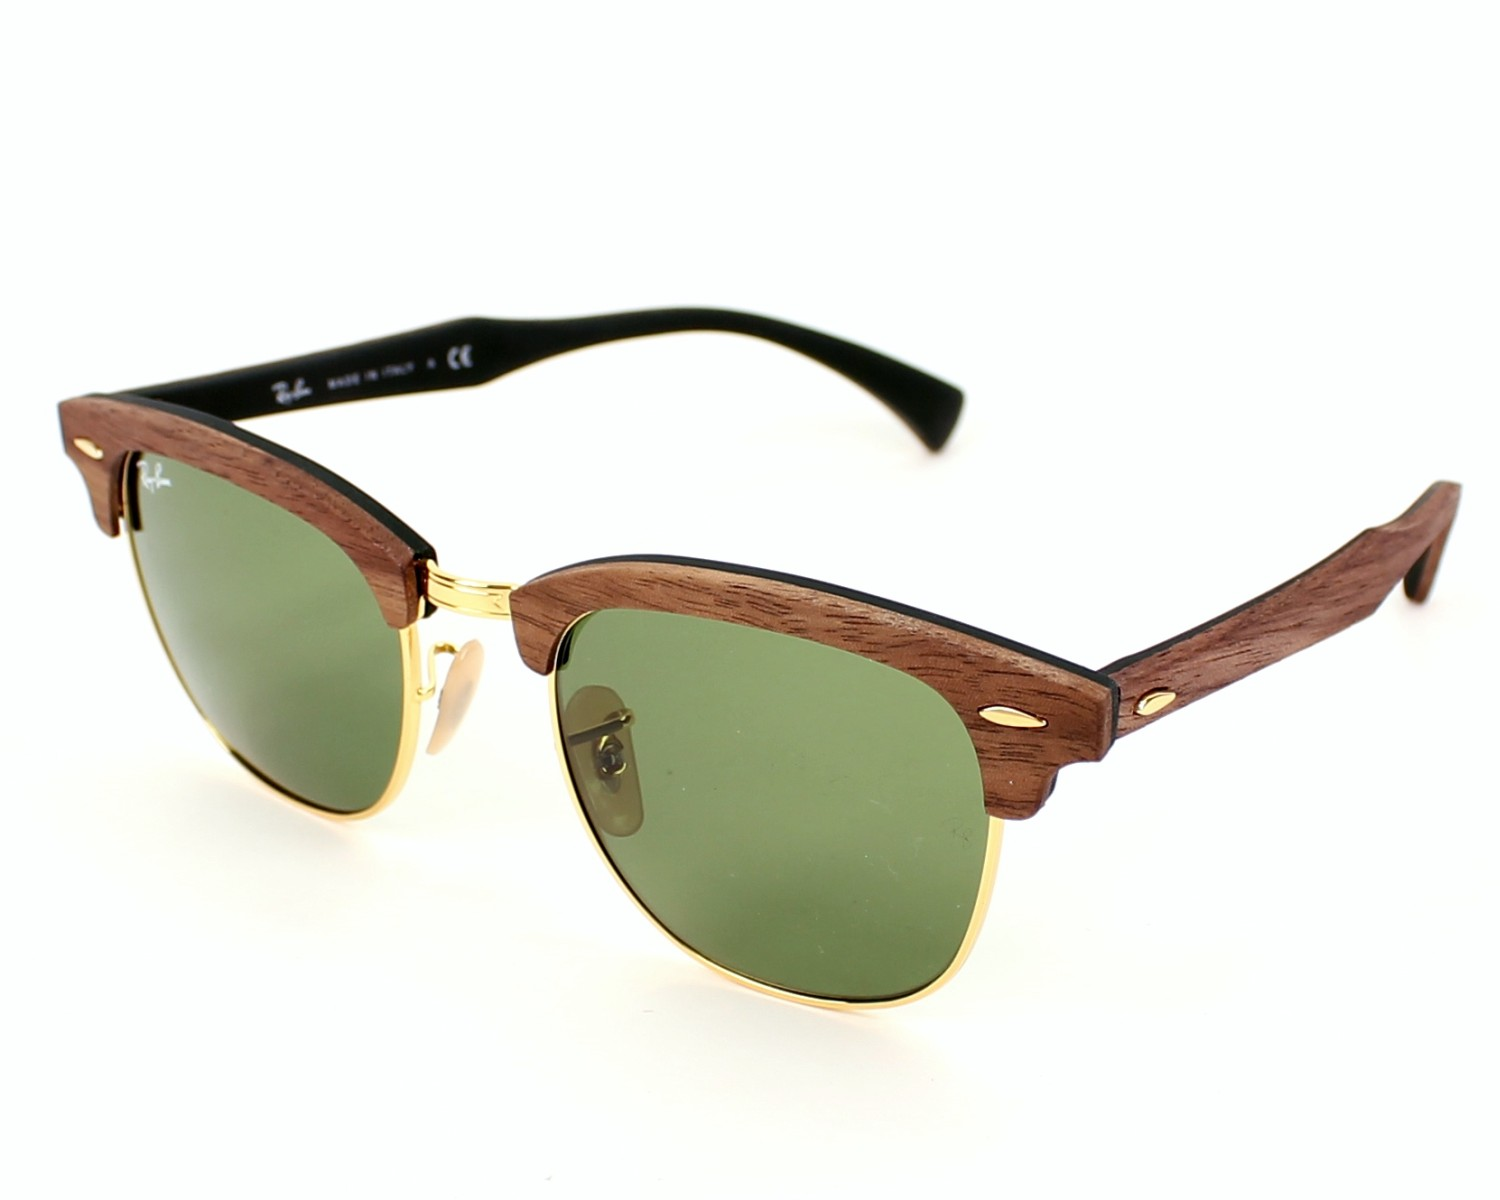 e8efd324a7c0 Ray-Ban Sunglasses Clubmaster Color Mix RB-3016-M 1182 4E